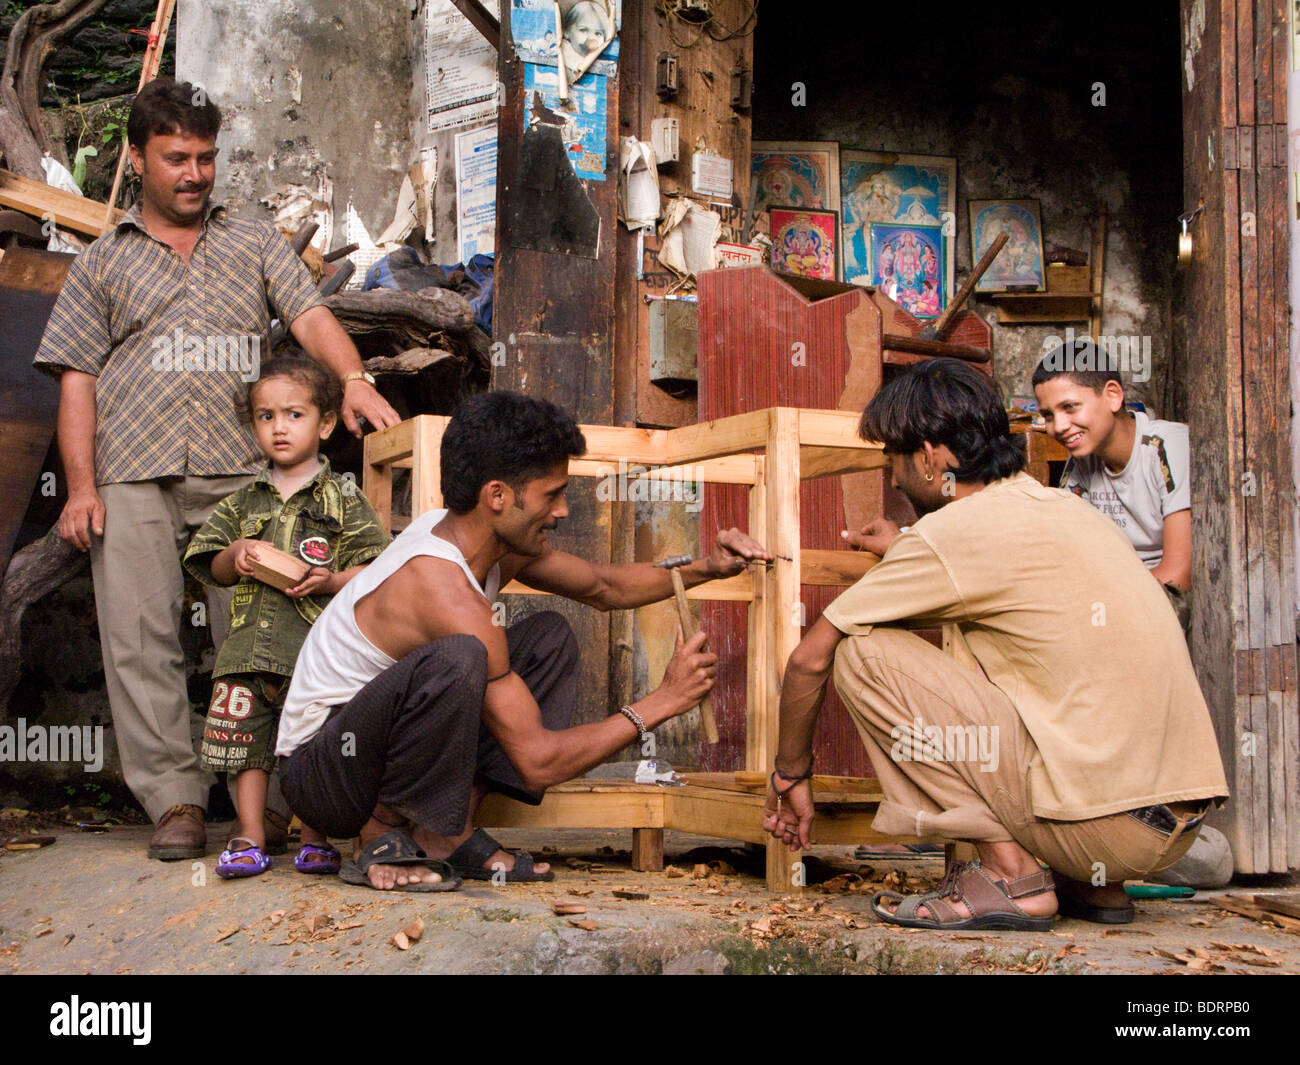 Indian carpenter making furniture / table frame. Chamba, Himachal Pradesh. India. - Stock Image